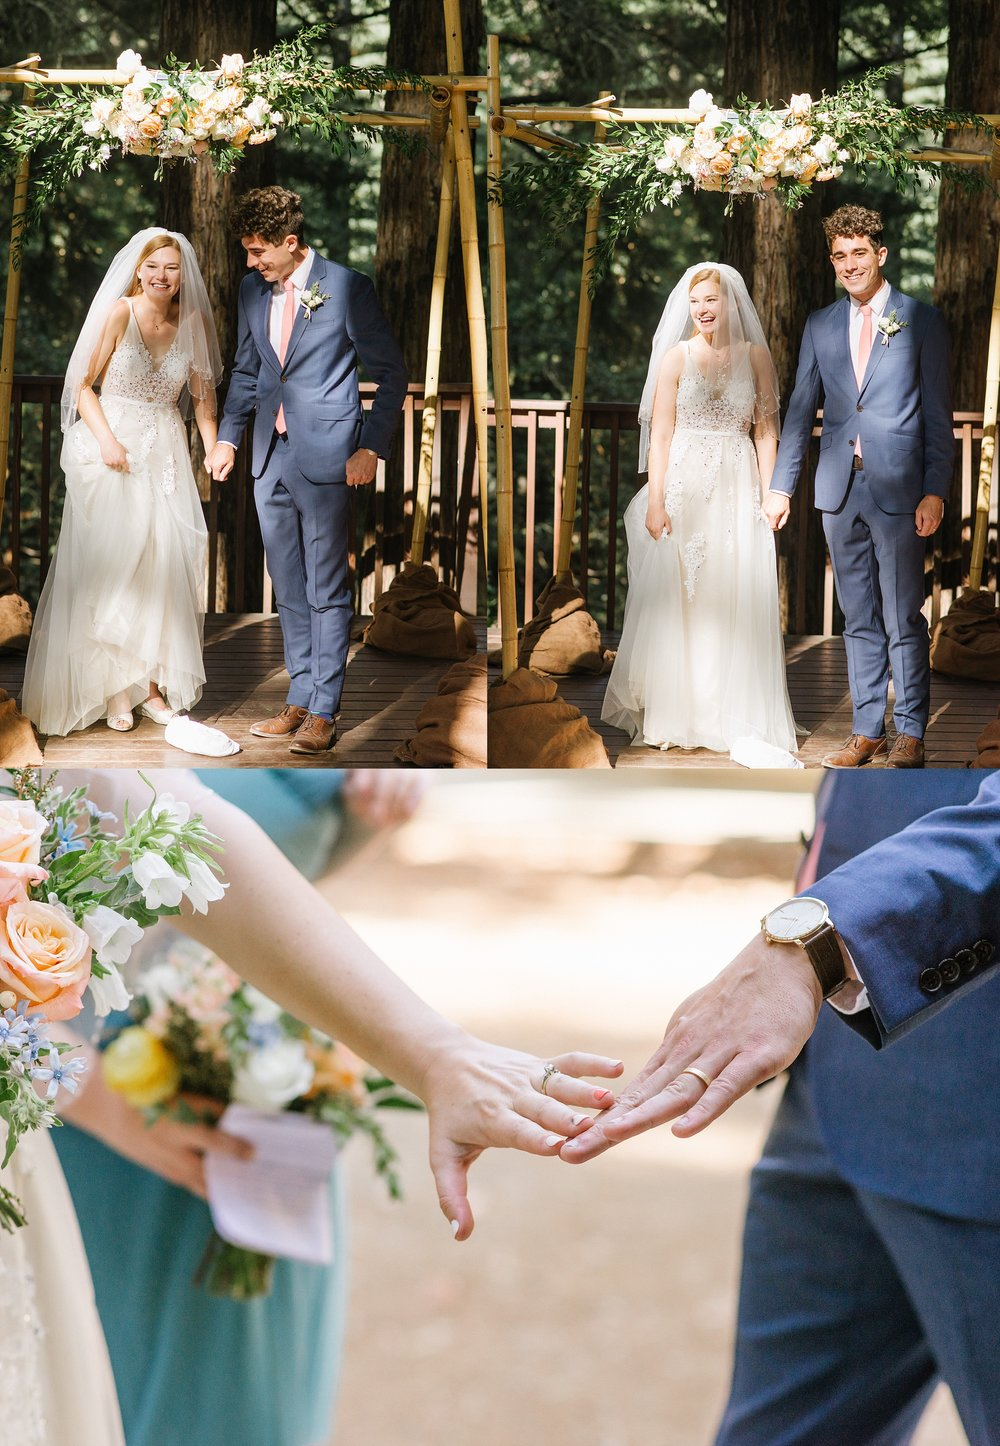 Amphitheatre-of-the-Redwoods-wedding-erikariley_chelsea-dier-photography_0023.jpg